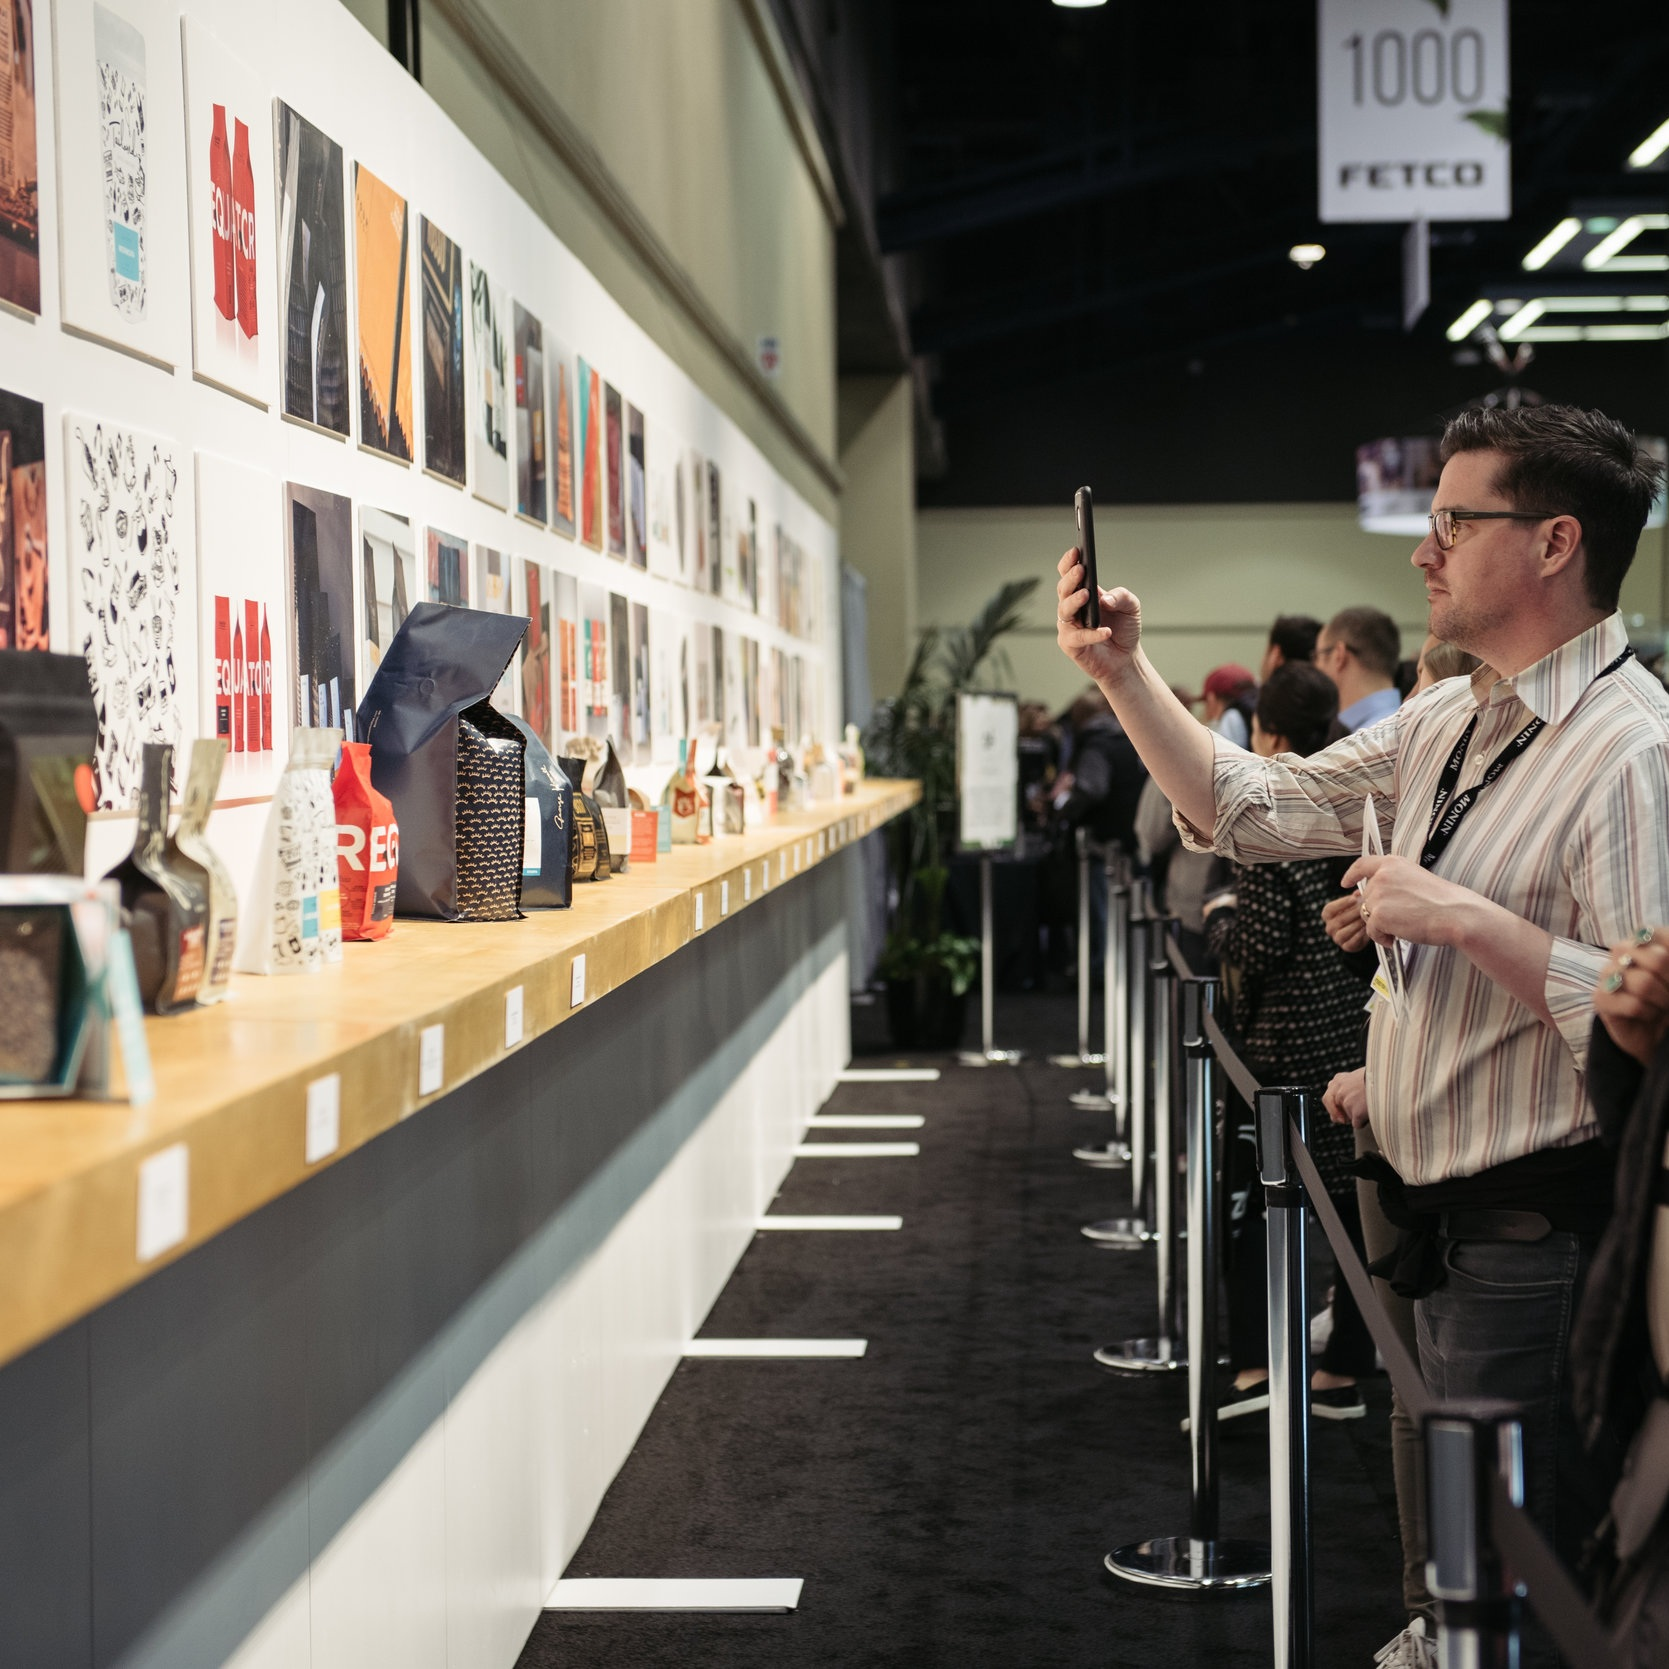 DESIGN LAB - Great design and great coffee often go hand in hand. This year, we're introducing a new interactive exhibit concept - Design Lab which has been running at our Coffee Expo for the last 4 years. This year's exhibits will focus on coffee packaging, vessels, spaces and branding.Apply to Design Lab